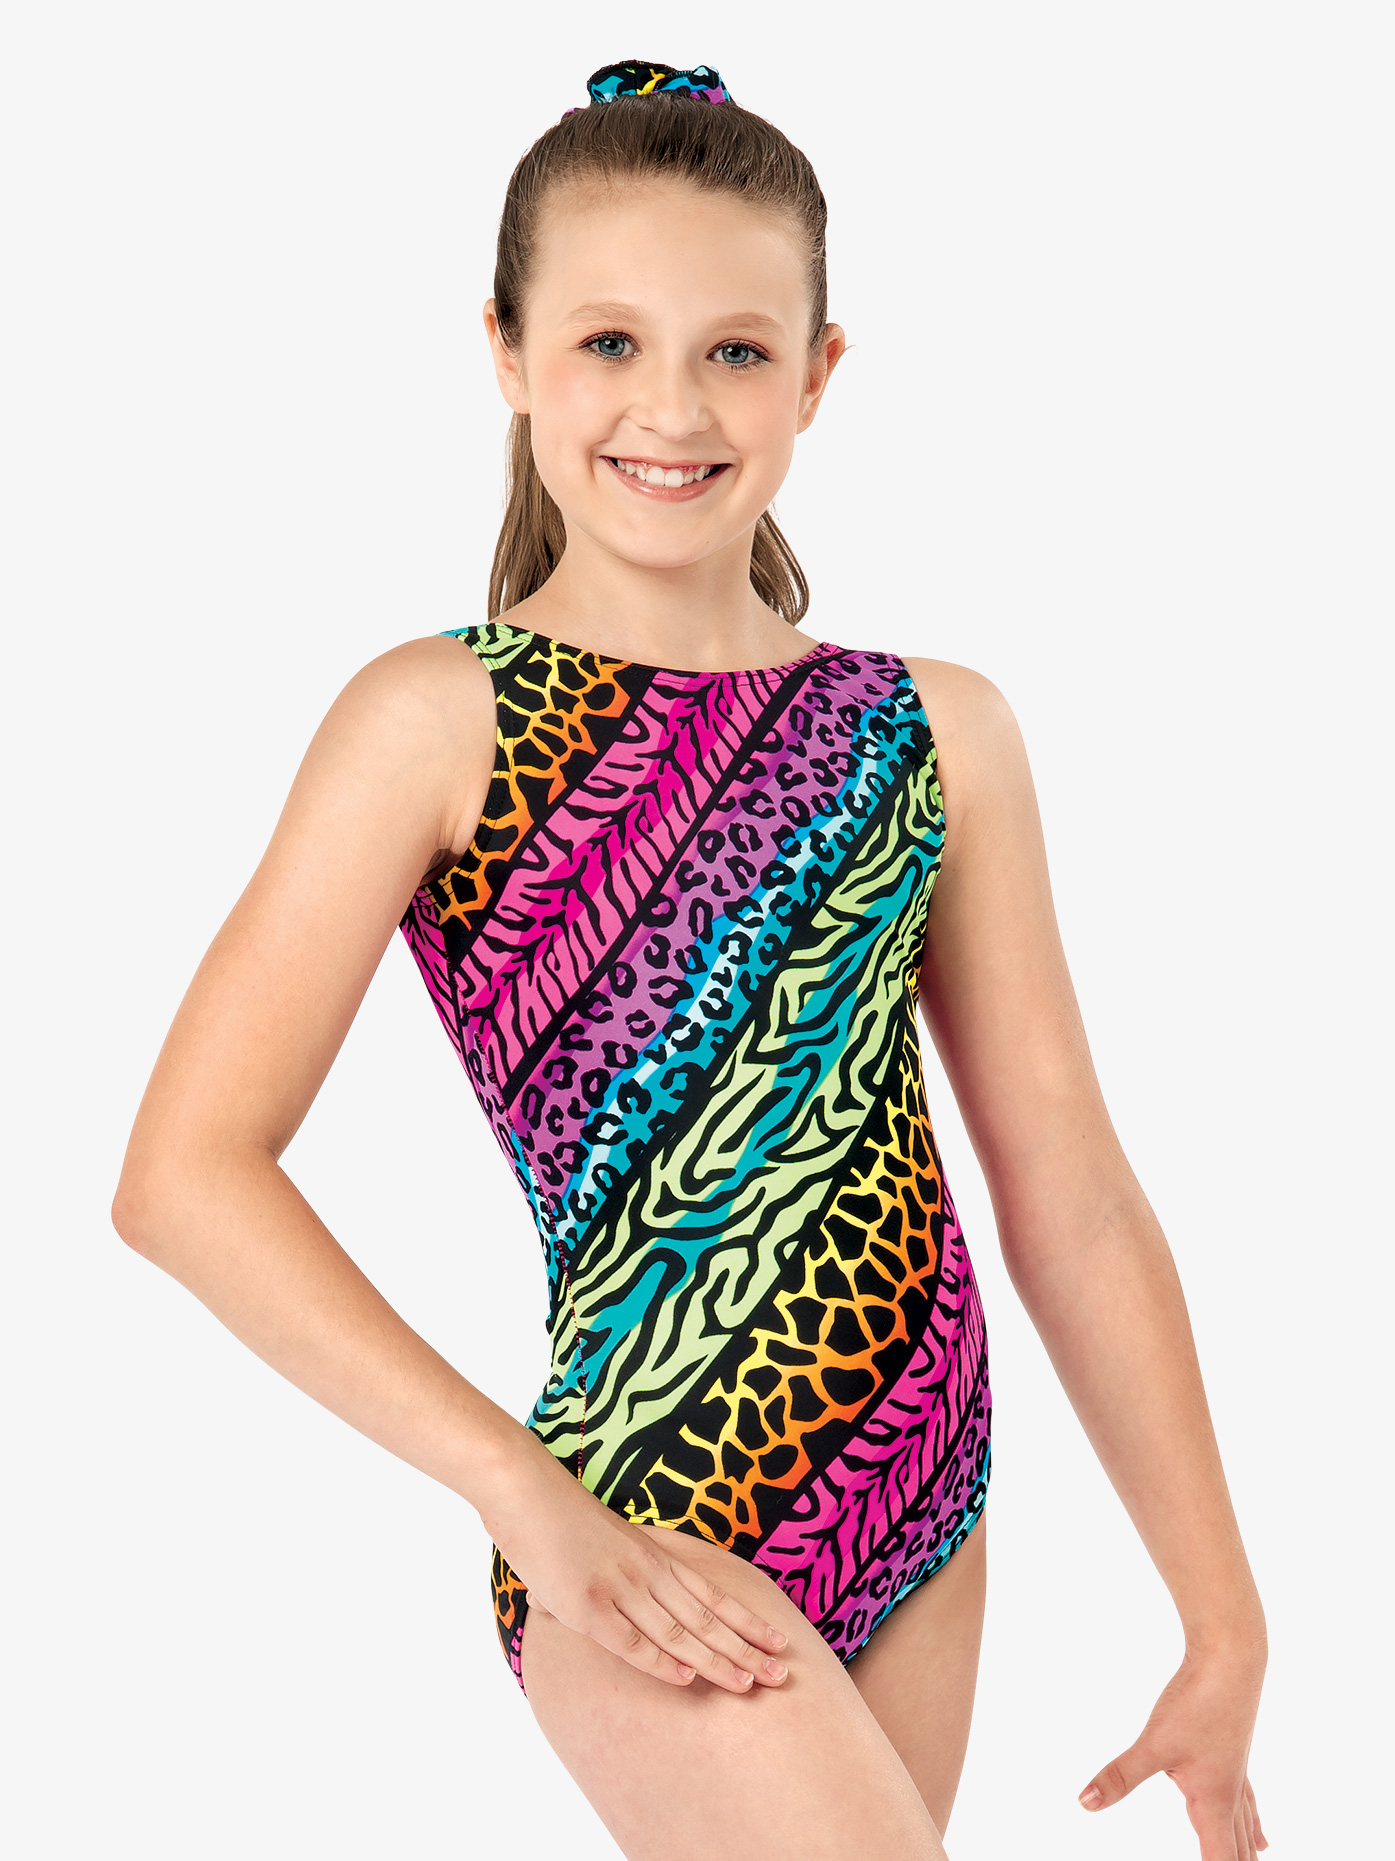 Perfect Balance Girls Jungle Mania Gymnastics Tank Leotard G619C